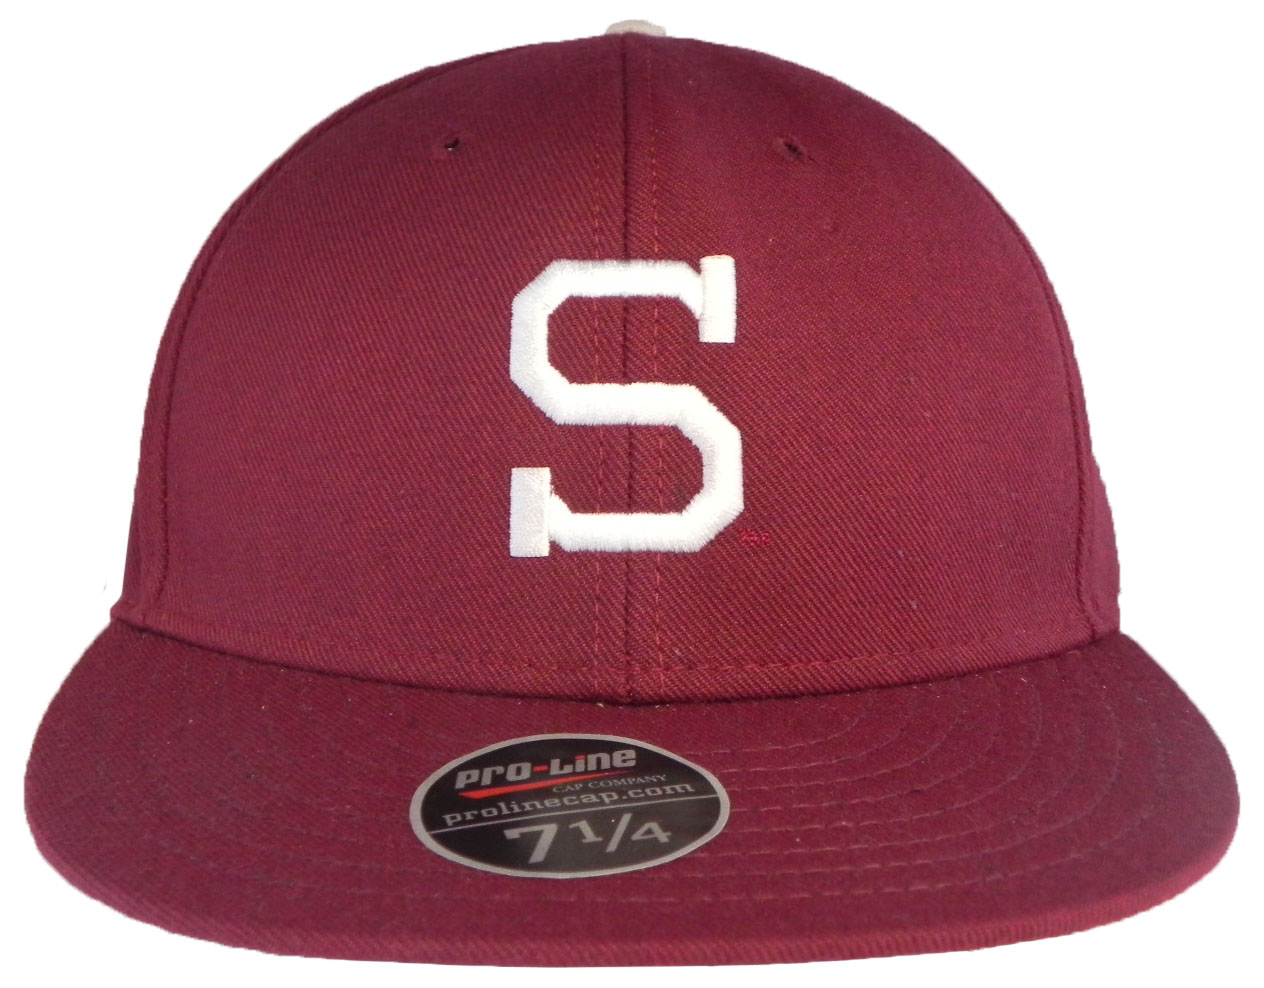 Best College Baseball Hats - Page 2 - Sports Logos - Chris Creamer s ... 97c24c13573a